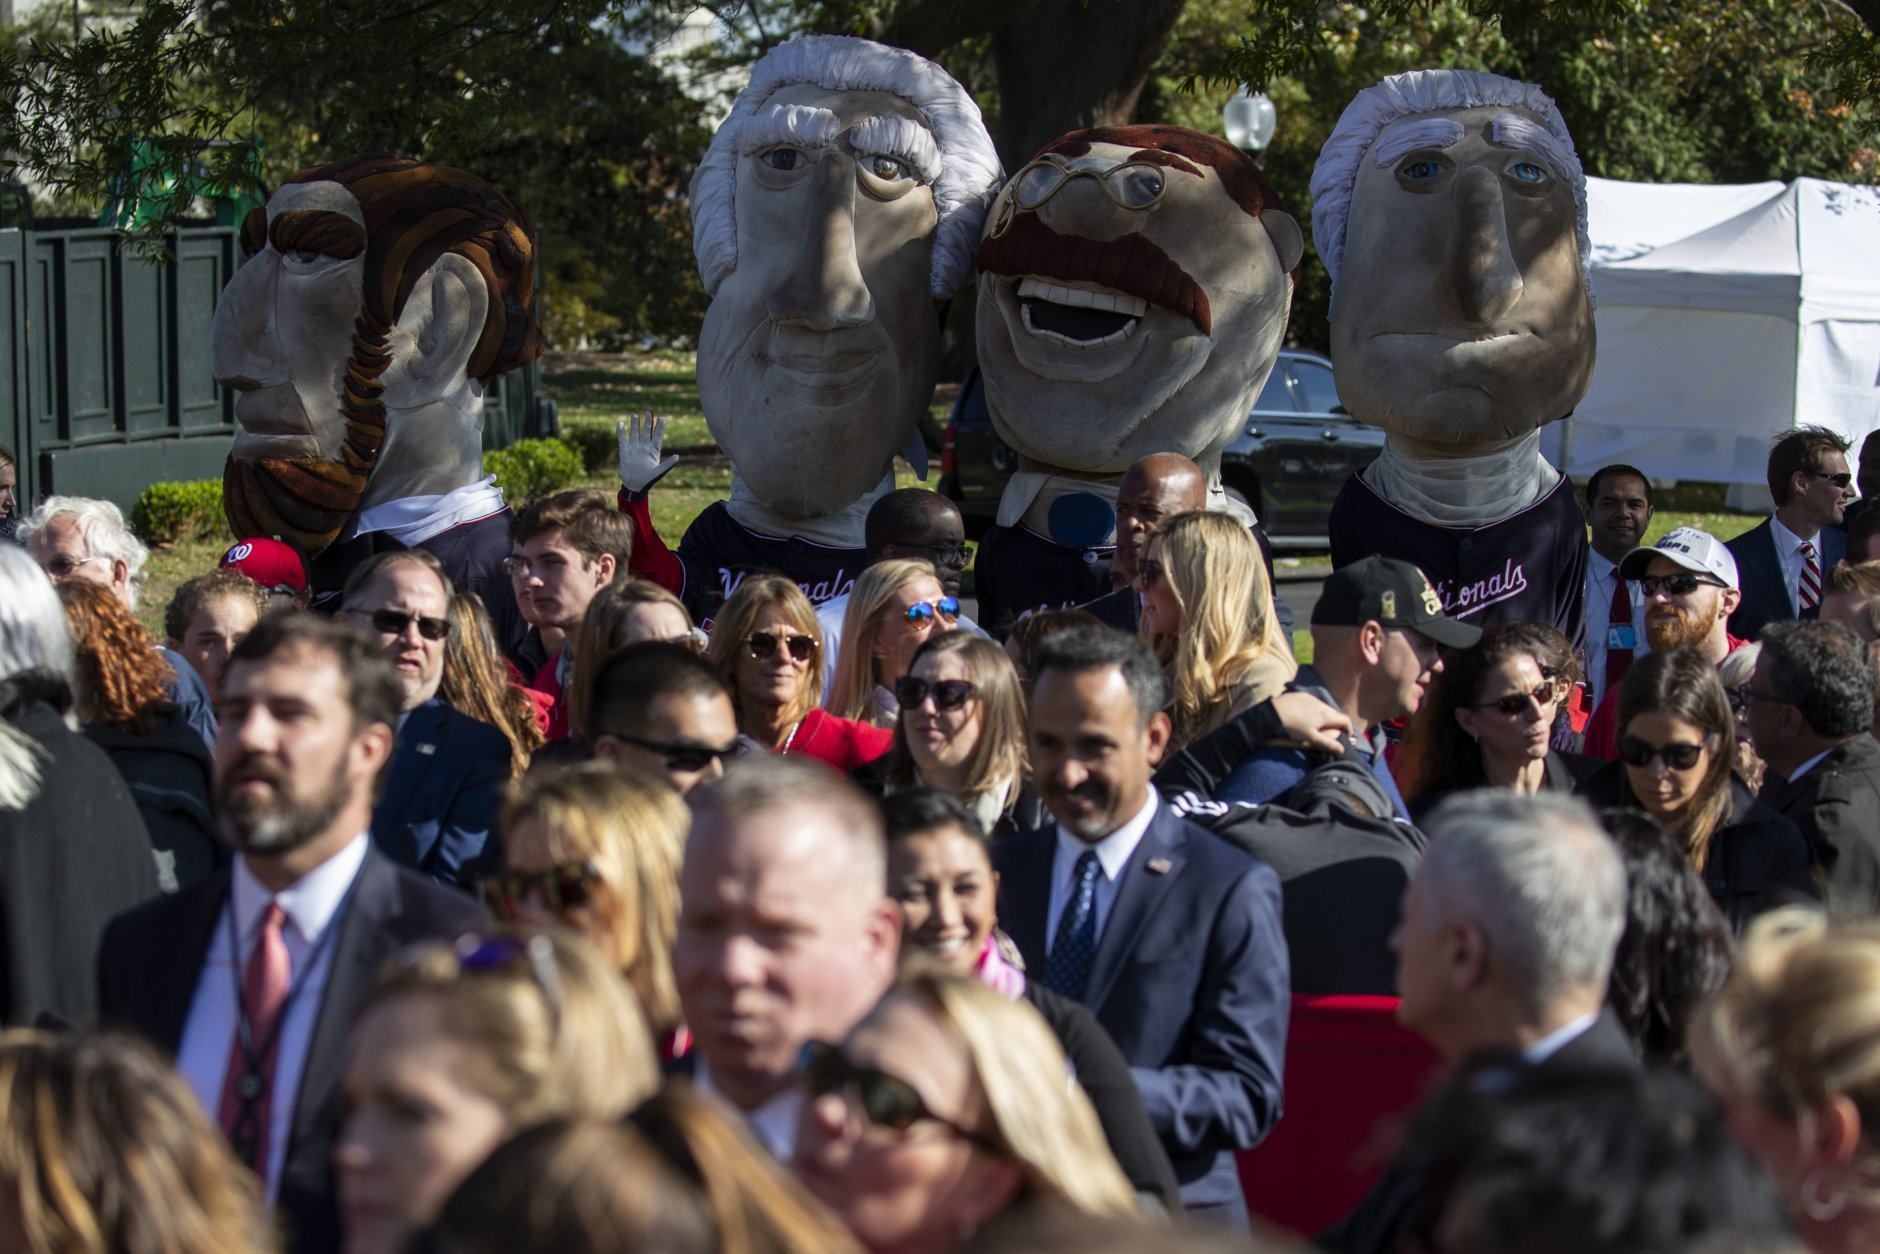 Fans watch during an event with President Donald Trump to honor the 2019 World Series Champion, Washington Nationals baseball team, at the White House, Monday, Nov. 4, 2019, in Washington. (AP Photo/ Evan Vucci)